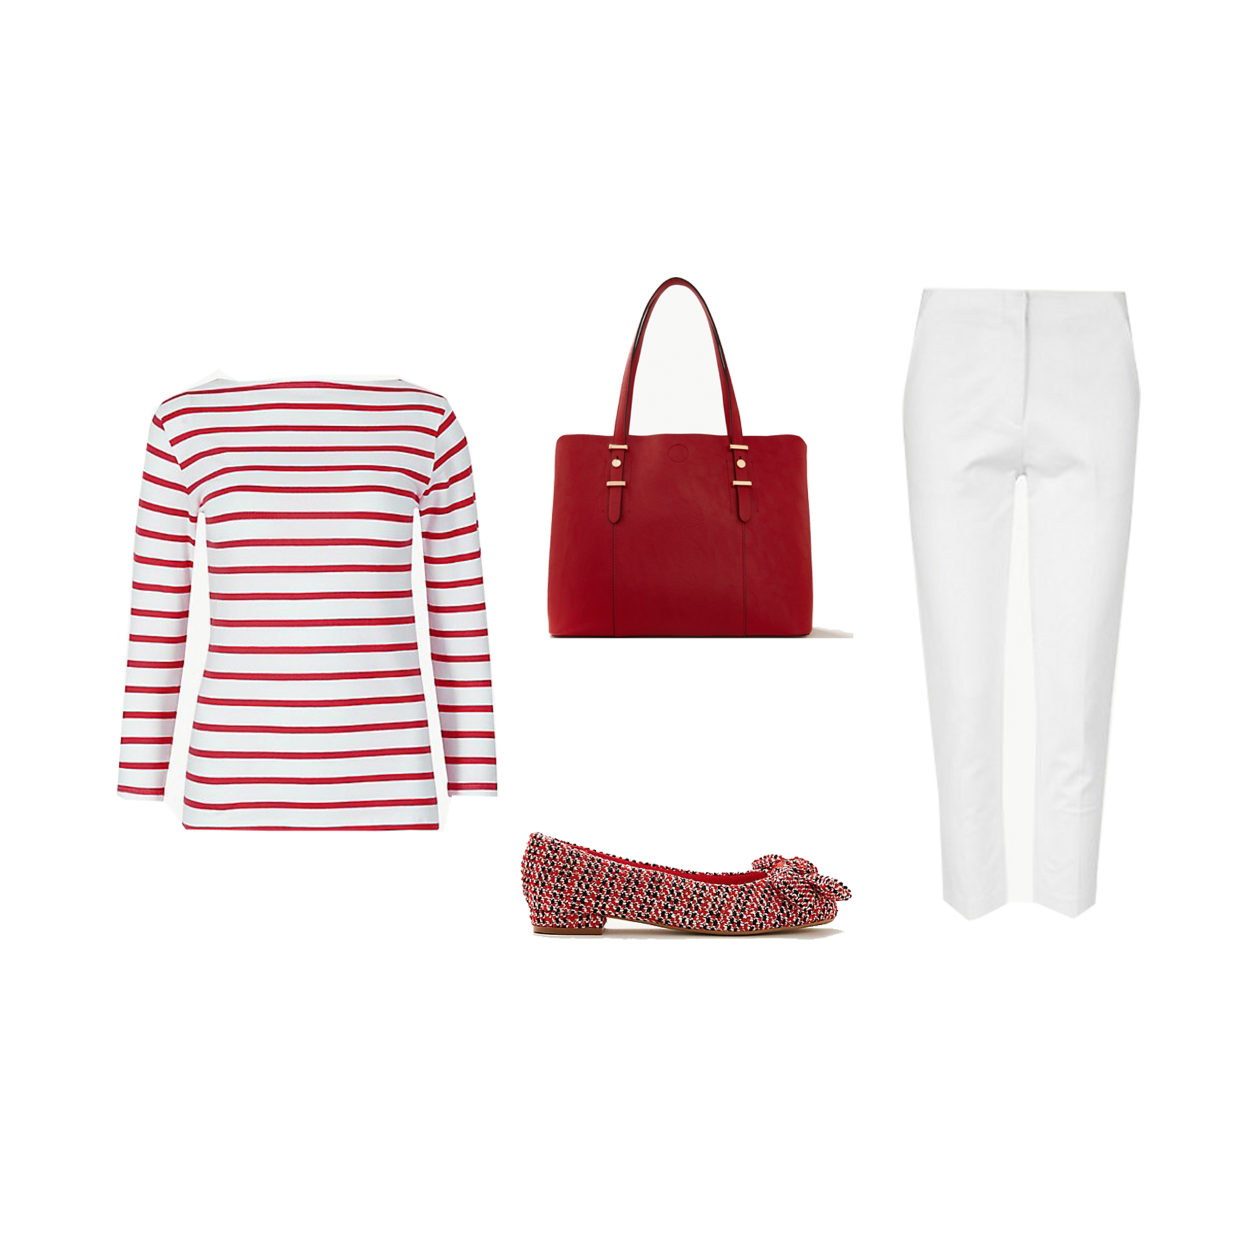 my midlife fashion, marks and spencer cotton rich striped fitted t shirt, marks and spencer faux leather soft stud tote bag, marks and spencer cotton rich slim cropped trousers, marks and spencer extra wide fit bow ballet pumps